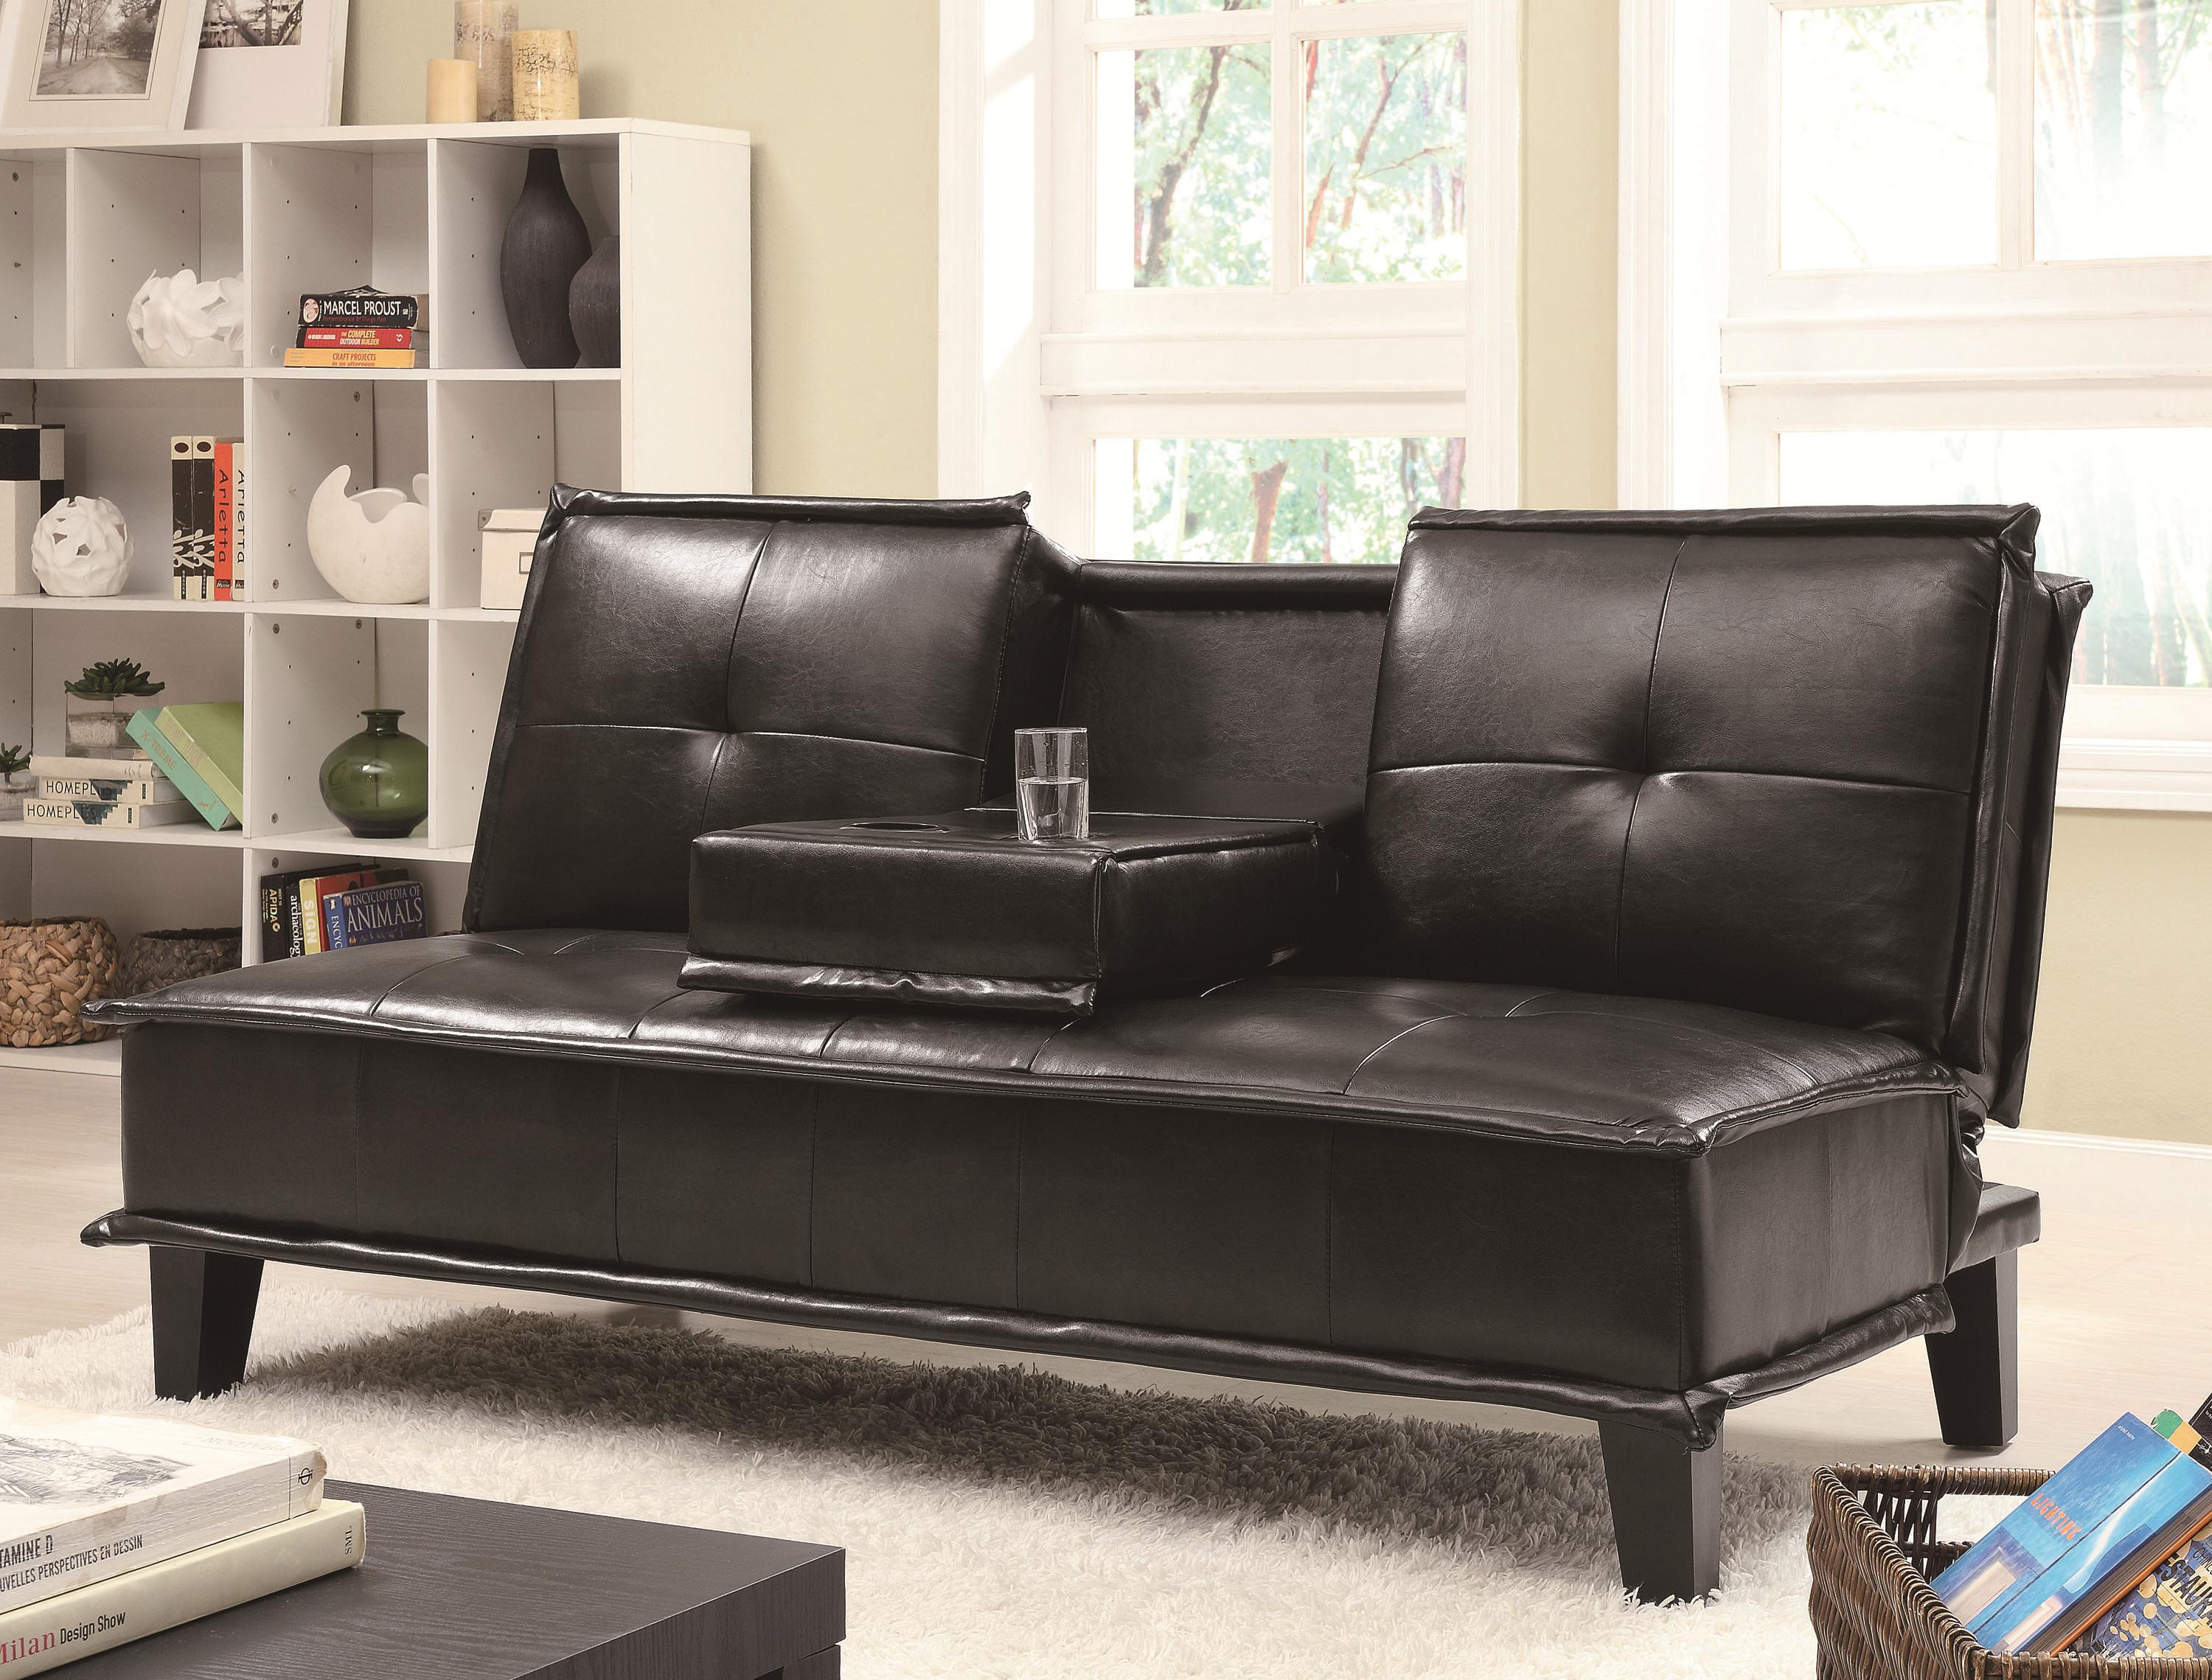 daybed roosevelt w r frame opened product trundle futon shop cherry teddy city iowa